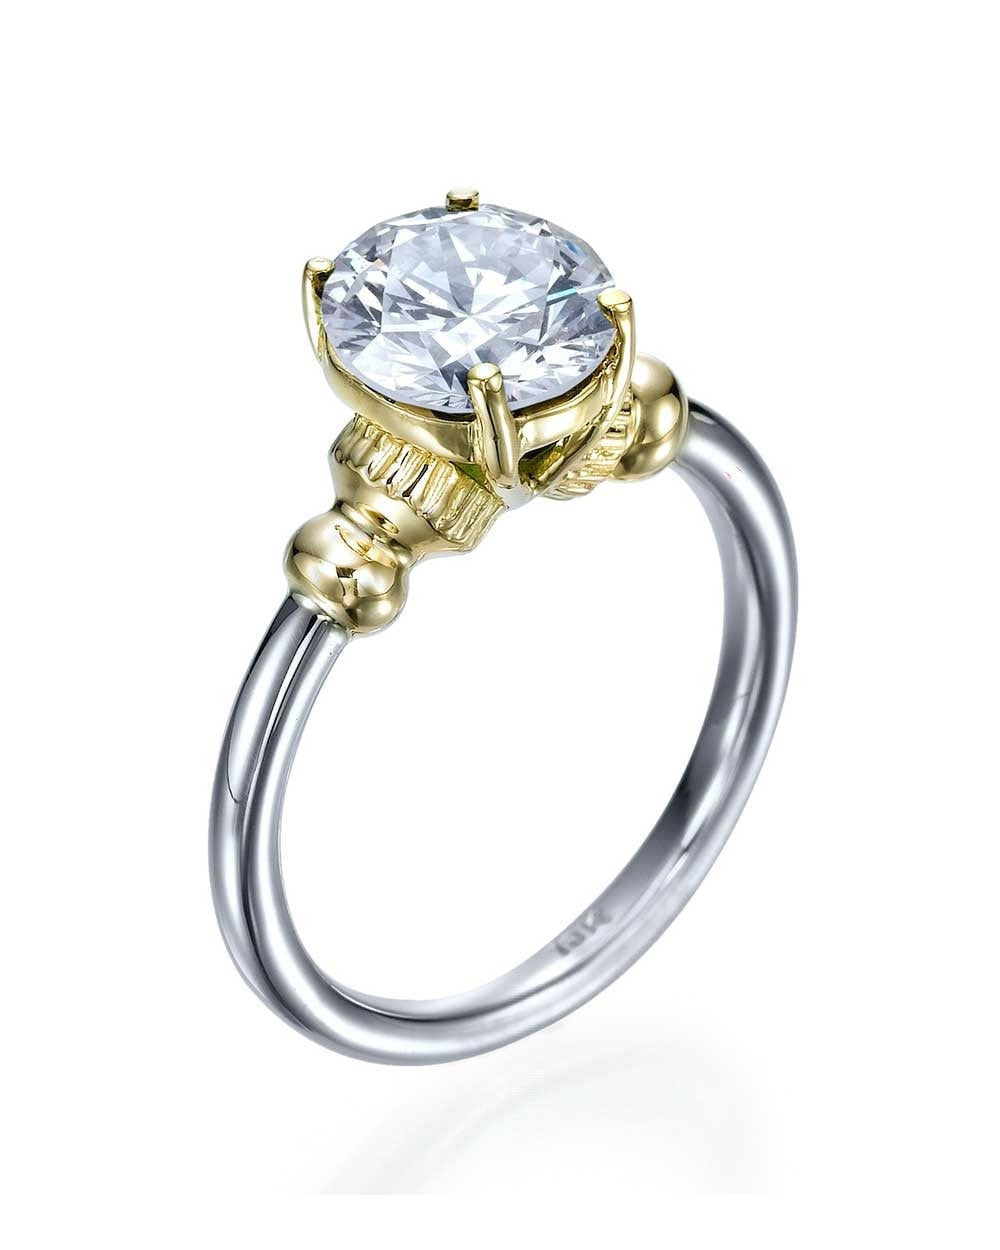 engagement gold round high diamond with multi ring bijoux prong set w majesty white mlkring accents cut in o stone rings